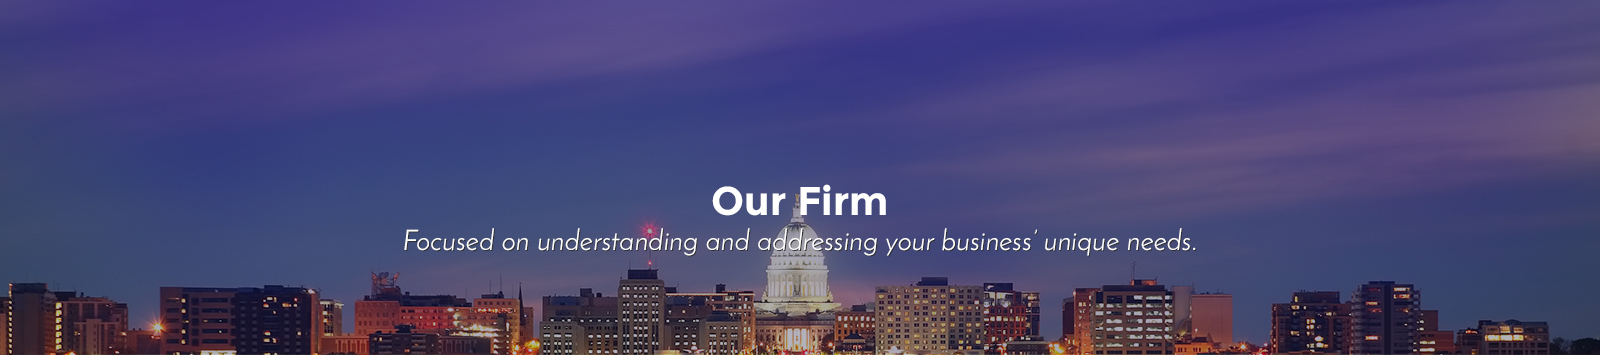 ourfirm-banner